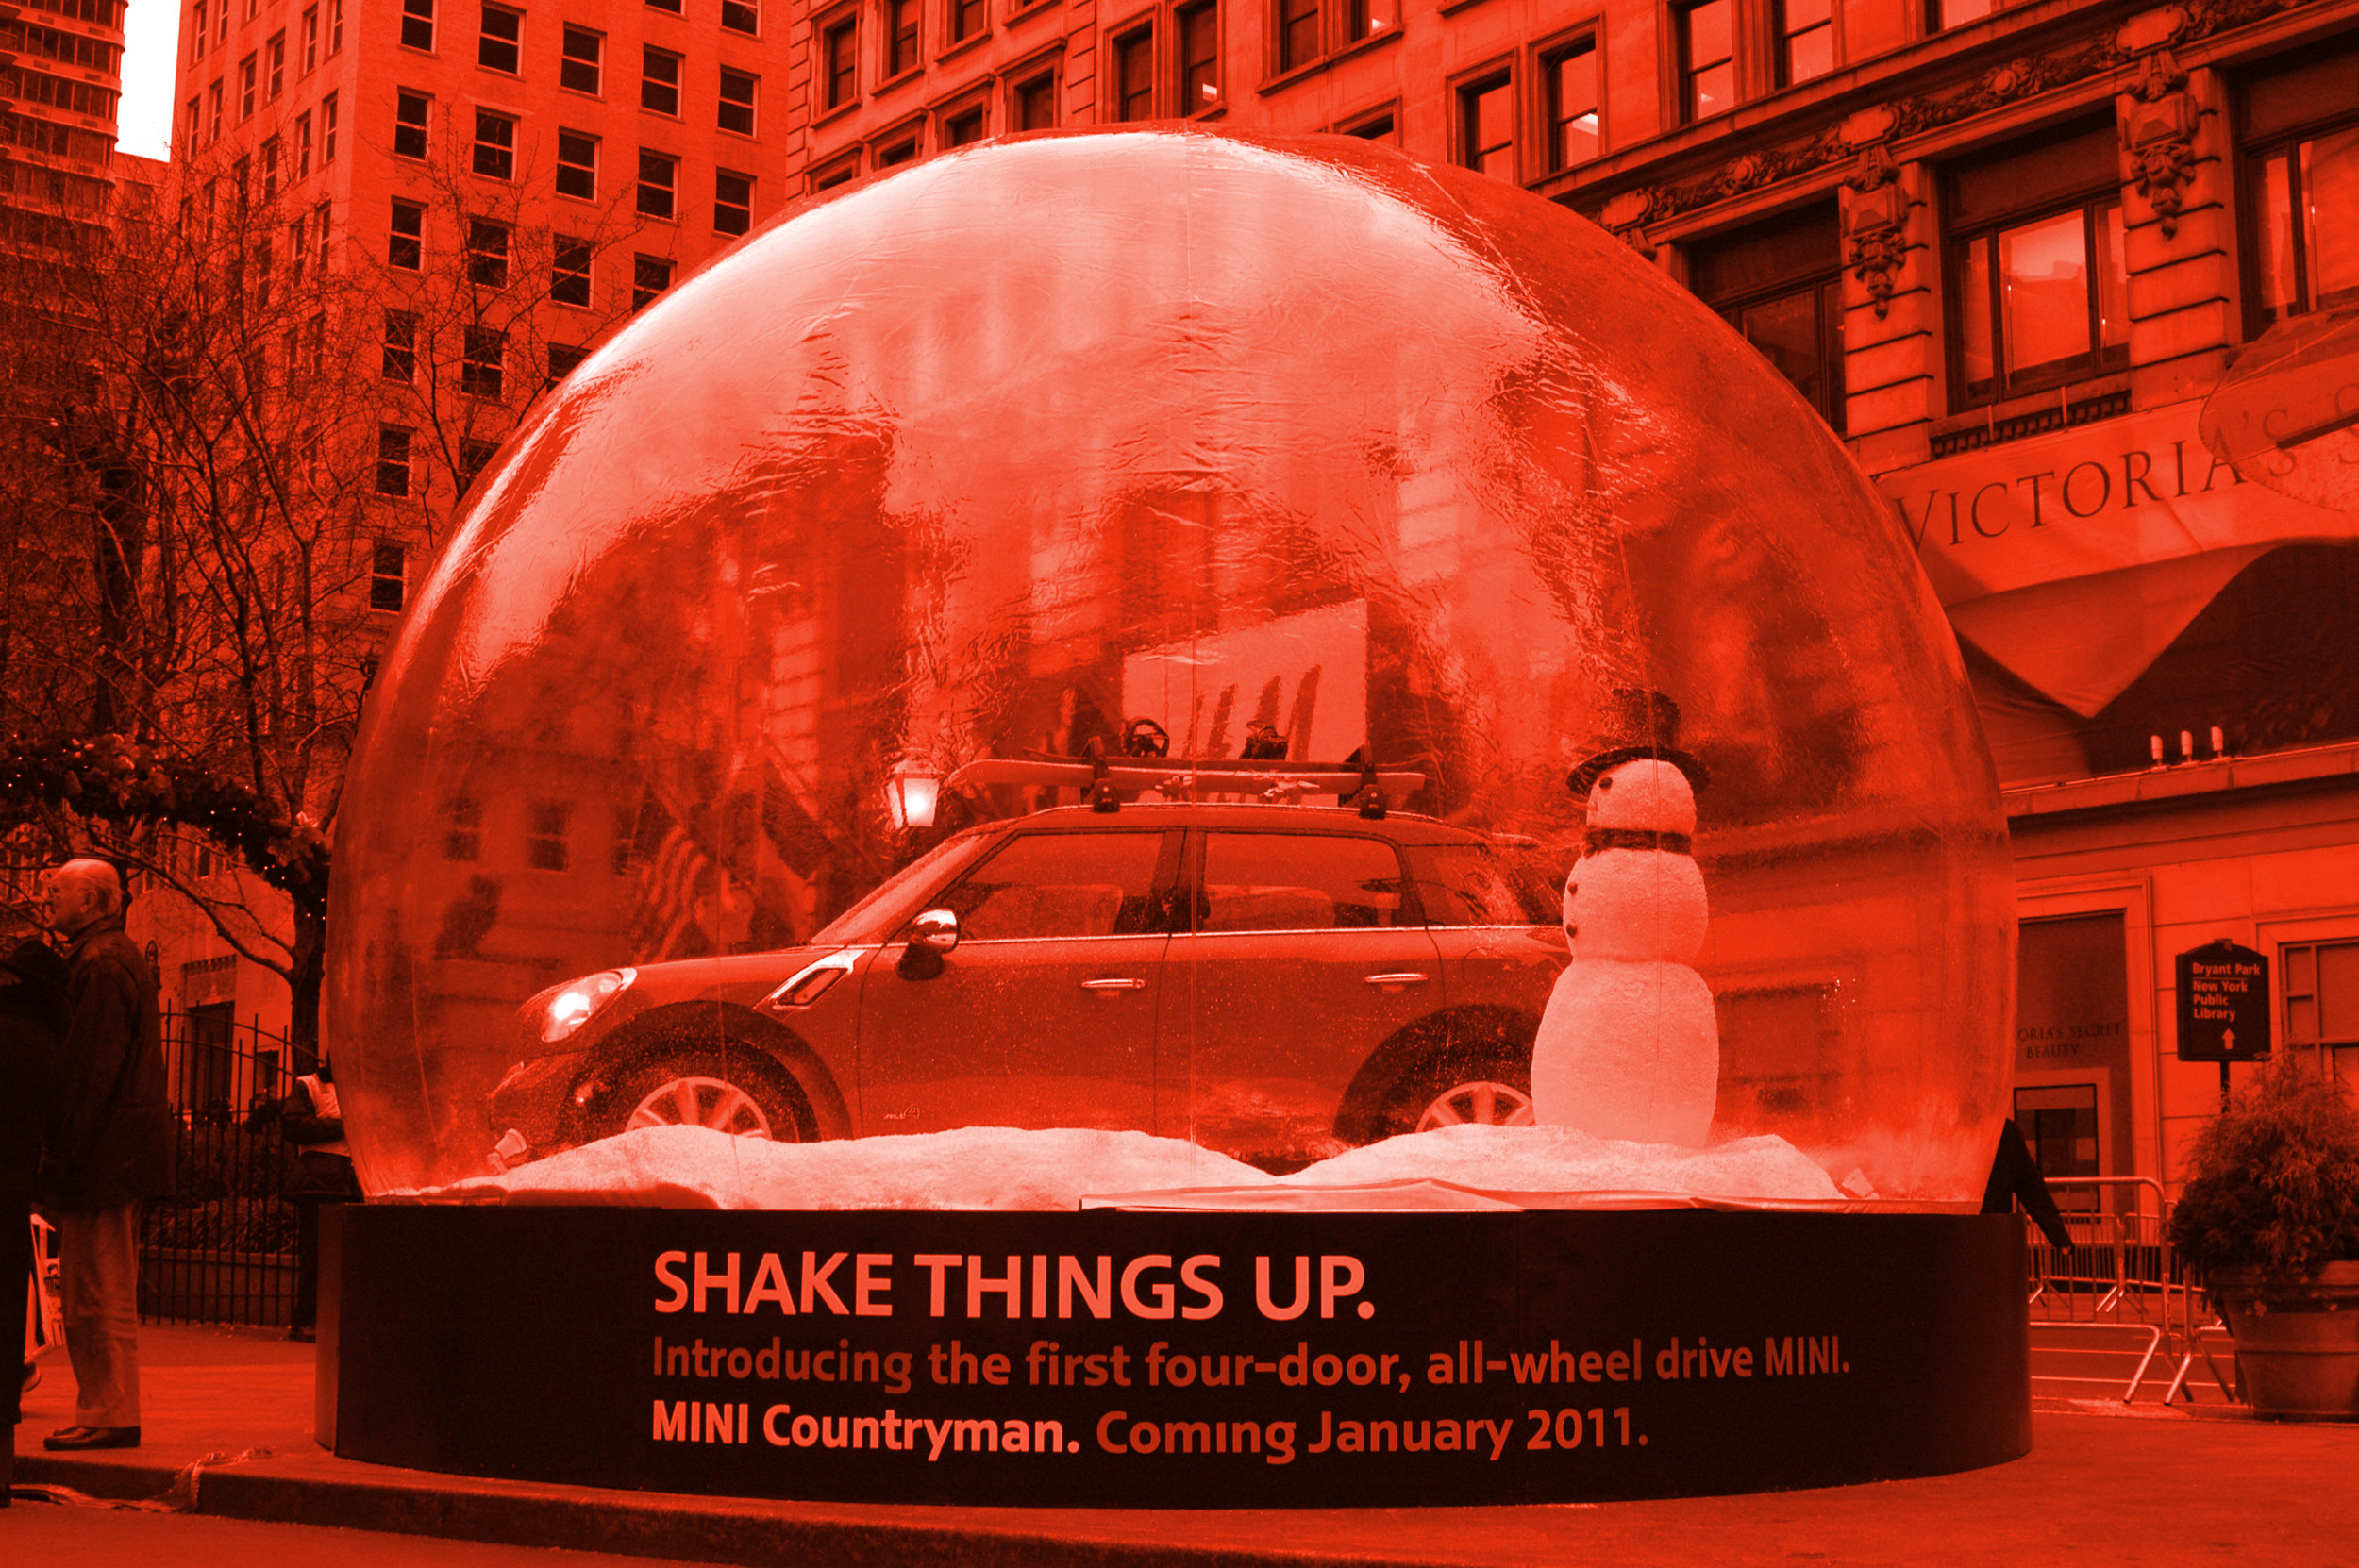 "2010 • MINI COOPER - Client: OOH PITCHMINI wanted to shake things up when introducing their first four door MINI Countryman. With winter being the season of launch it was the perfect time to create a giant MINI Snow Globe and literally ""Shake Things Up"". This became an eye-catching photo moment in both NYC and LA as on lookers snapped photos of the whimsical display while holiday shopping."